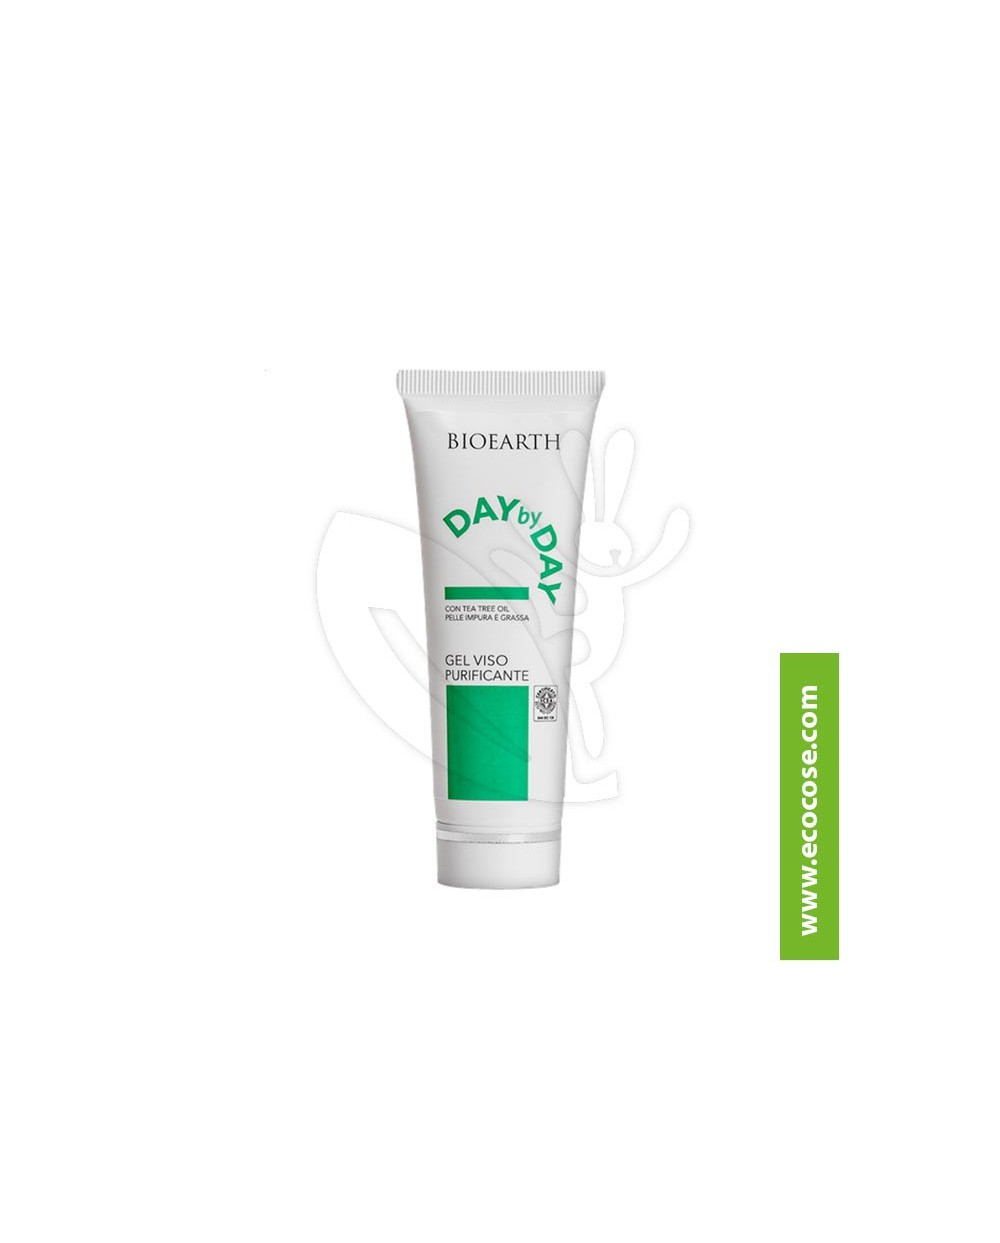 Bioearth - Day by Day - Gel viso purificante